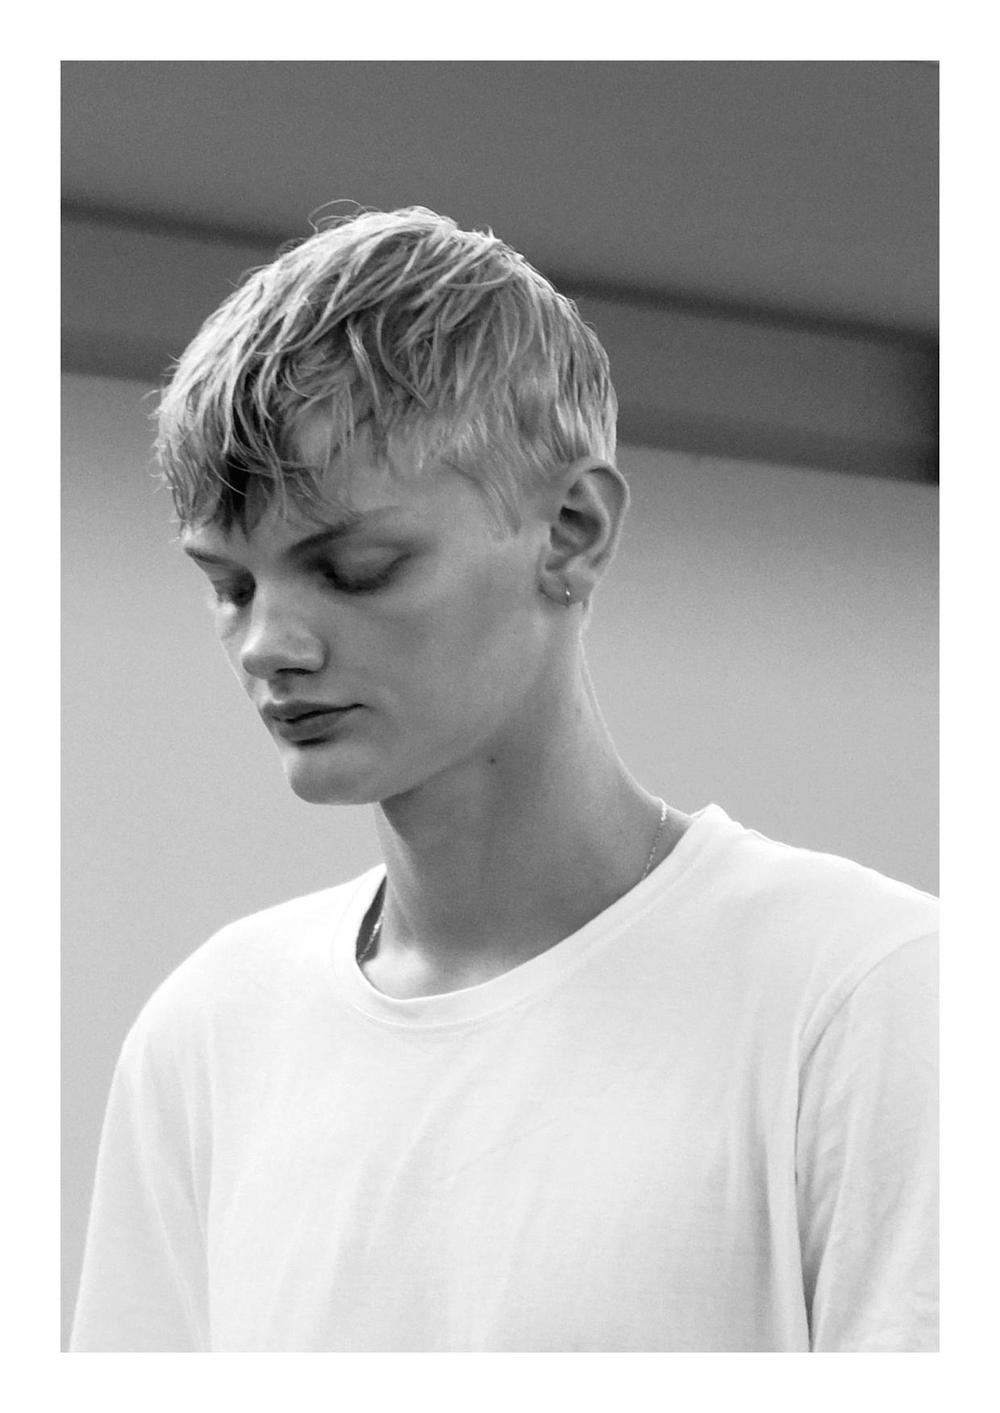 Backstage_SS17_Paris_Lisa_Lapierre_Behind_The_Blinds_01.jpg